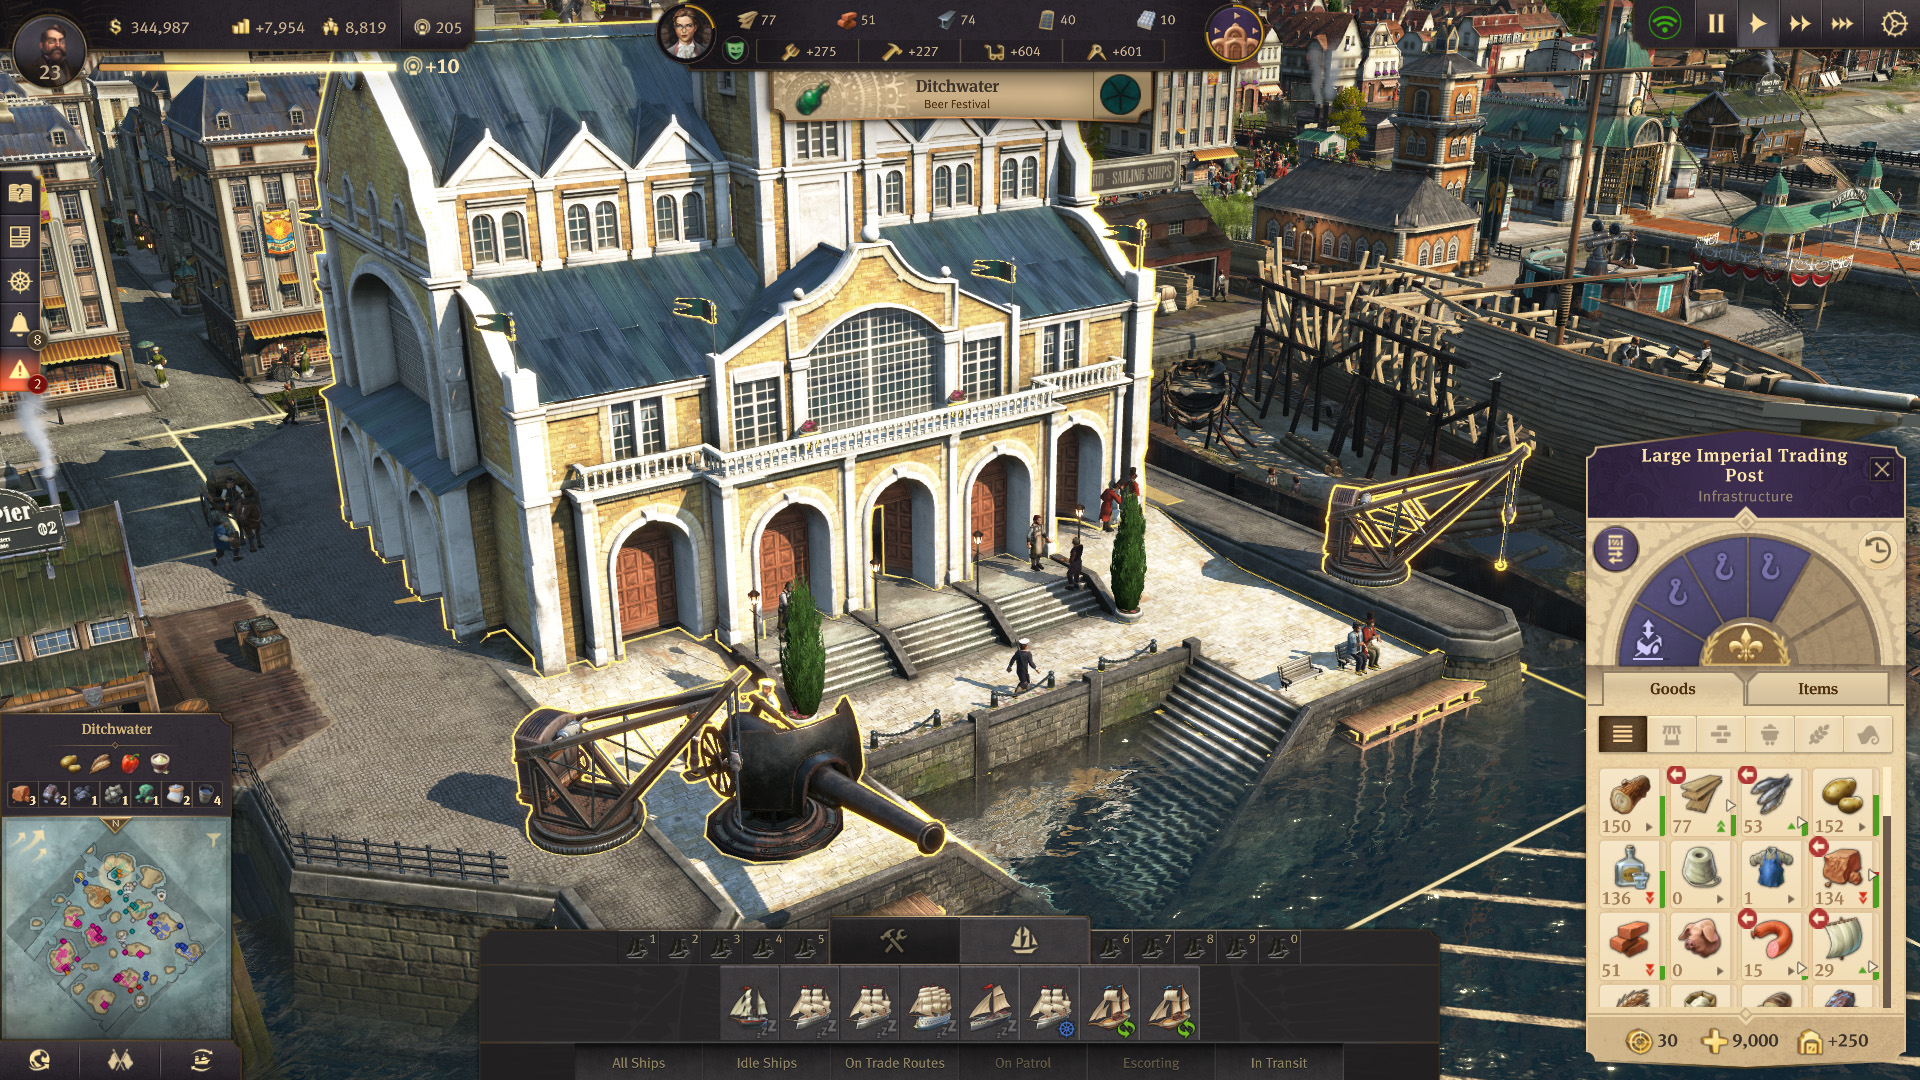 Anno 1800 tips: production lines, money making and more explained